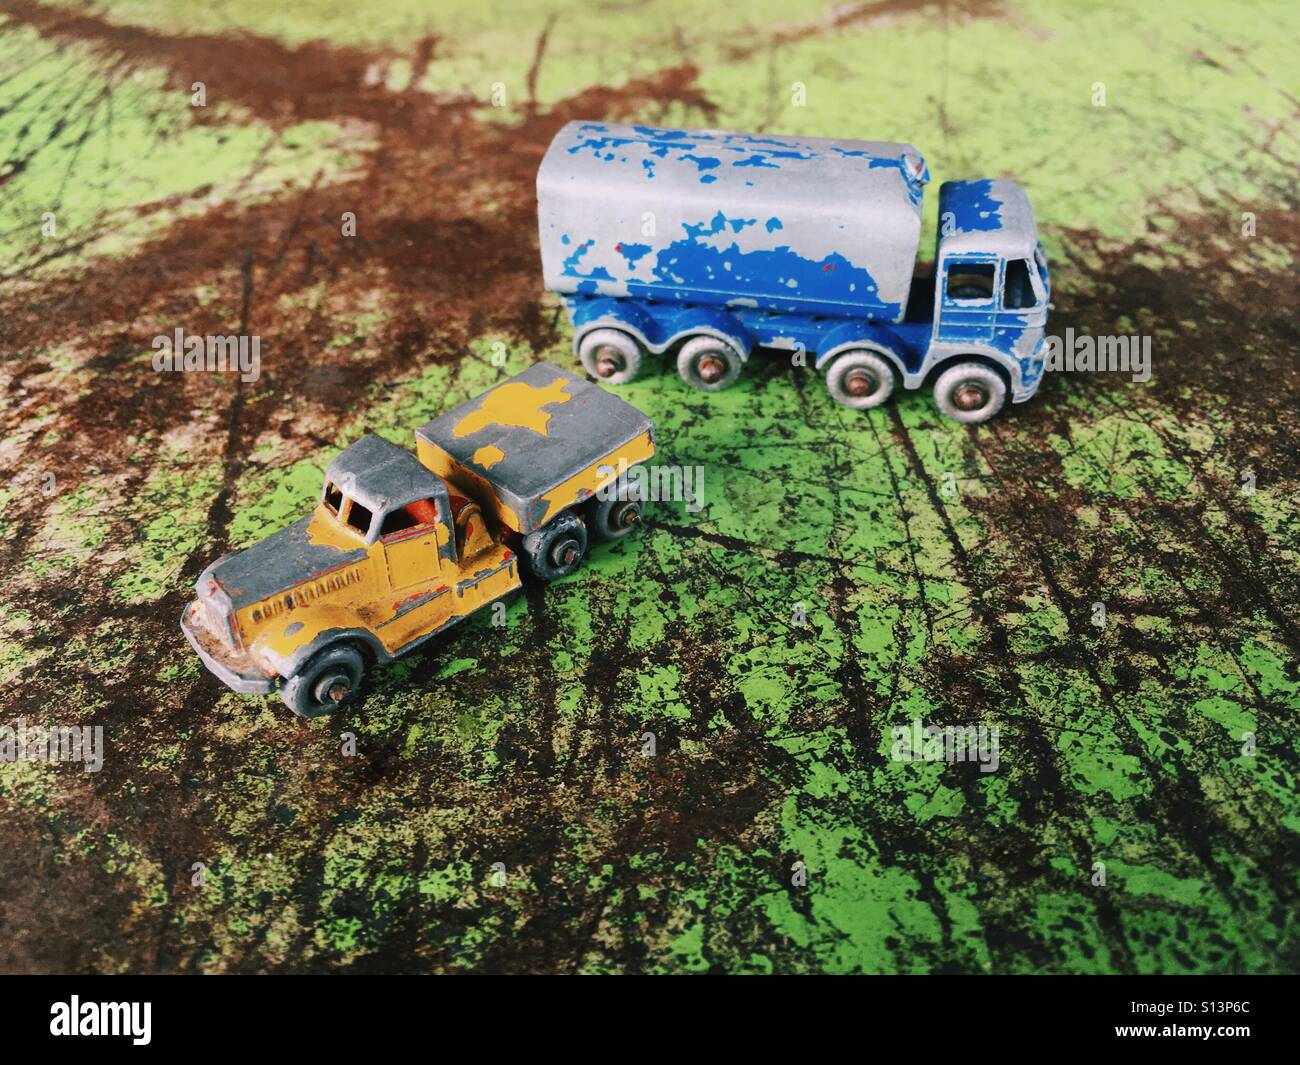 Vintage Matchbox cars on a grungy metal surface Stock Photo